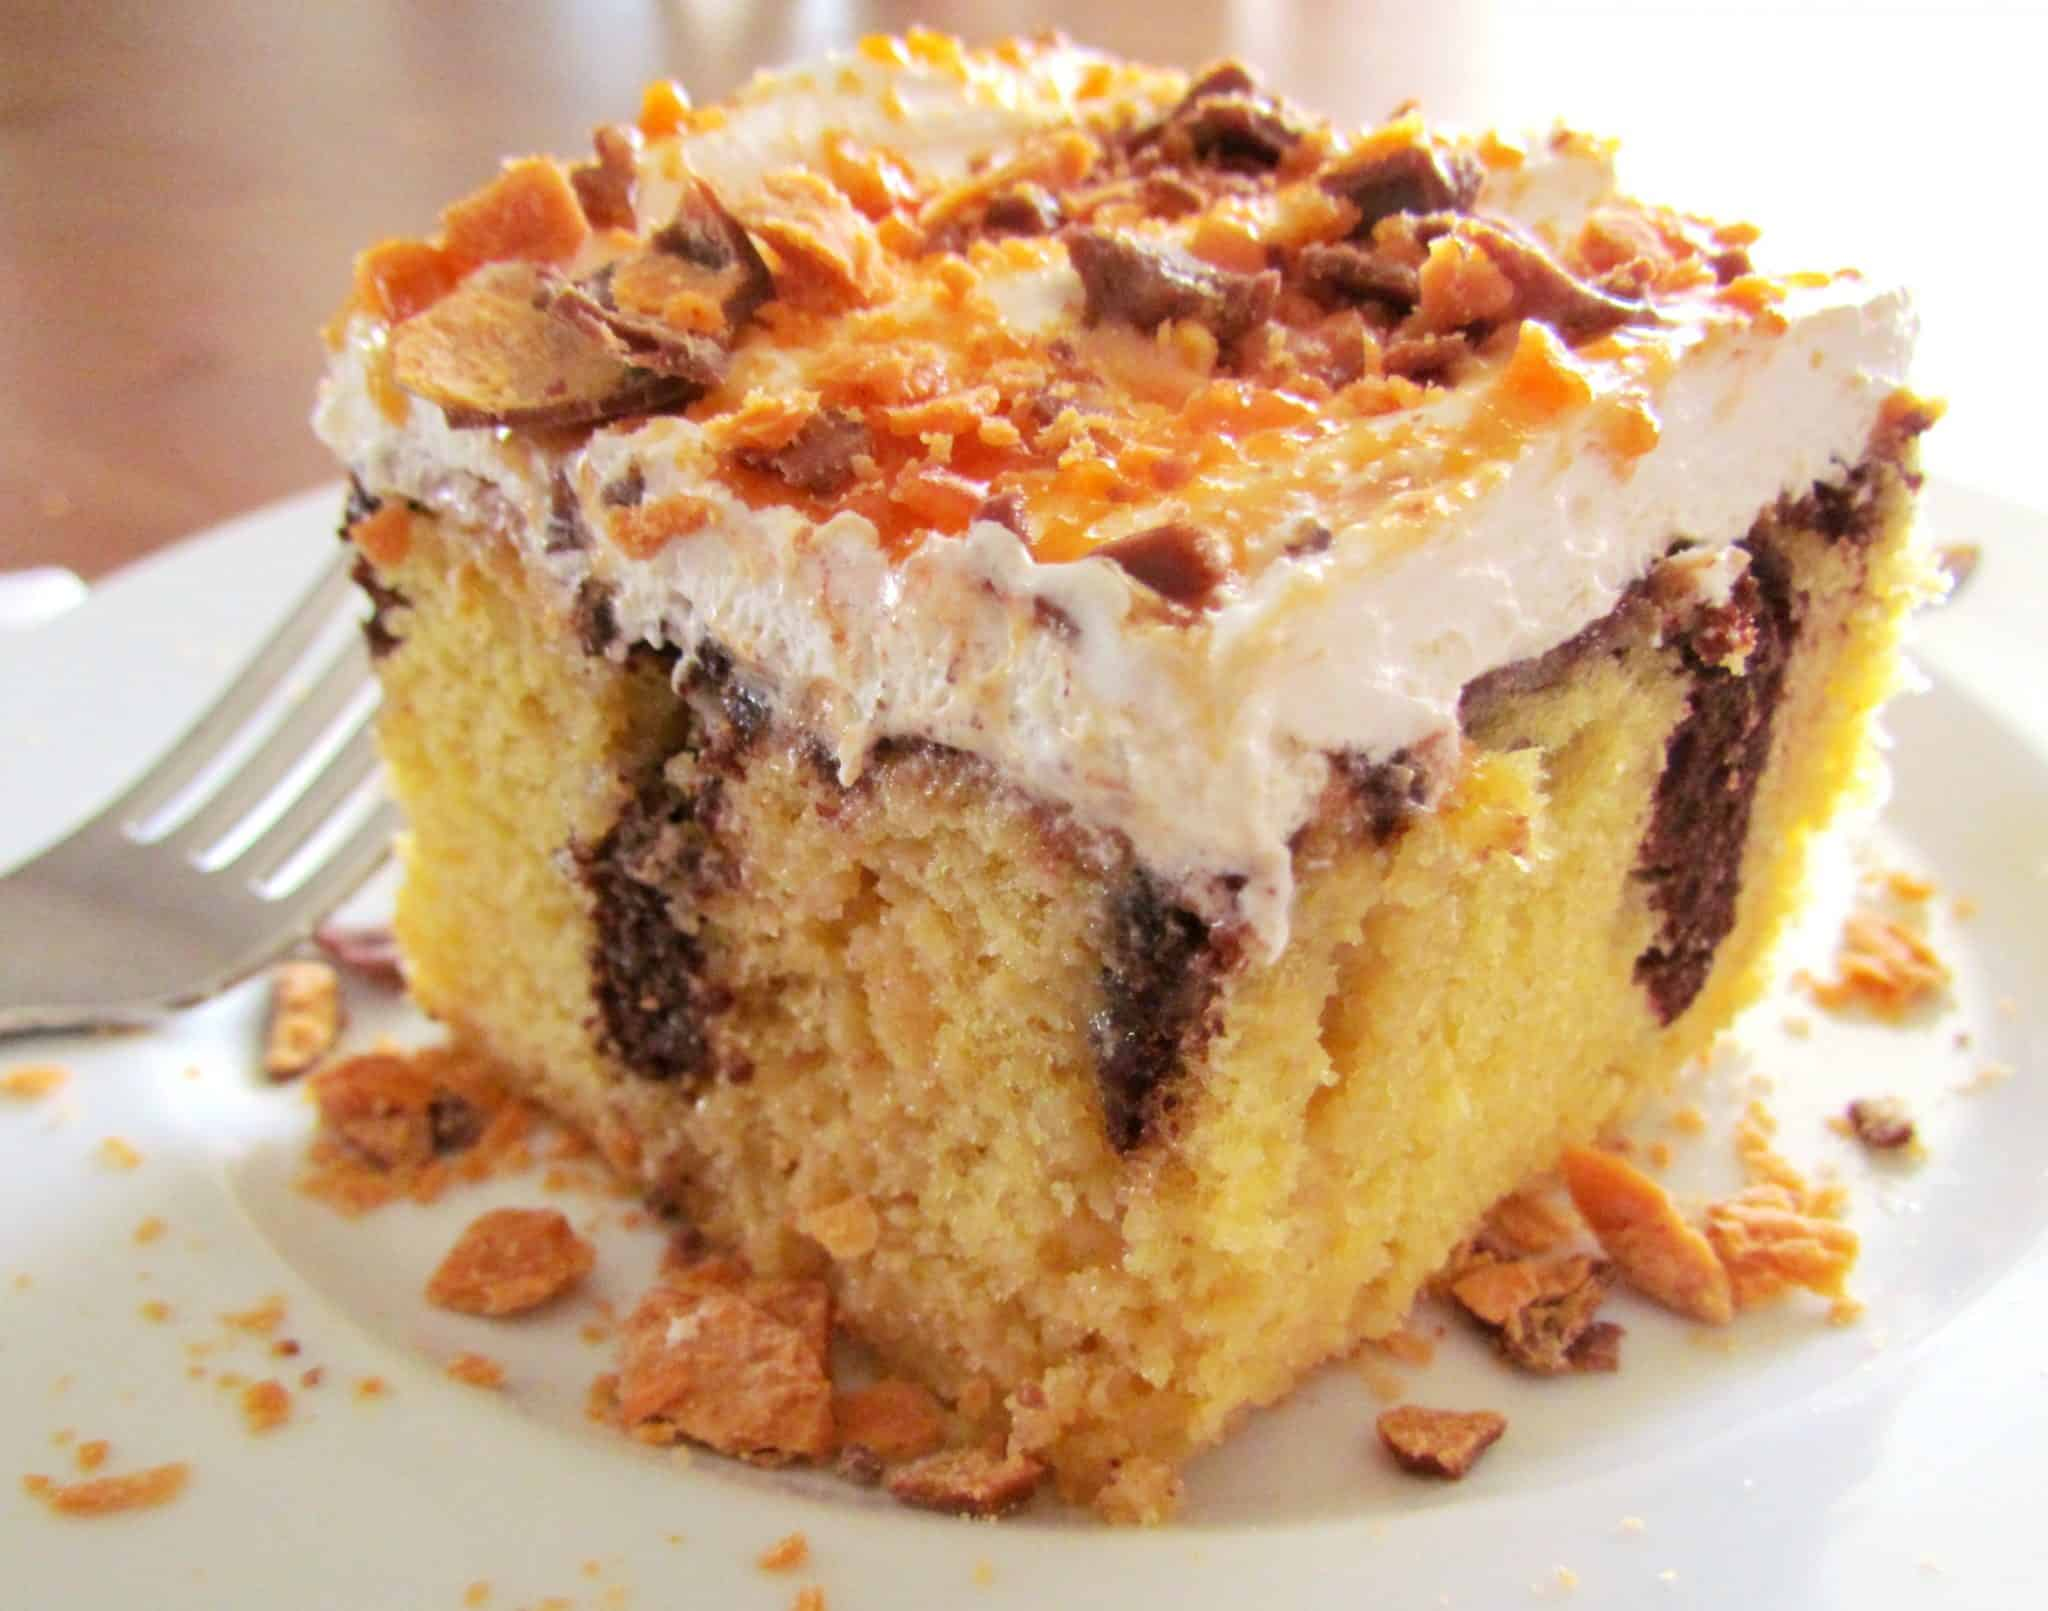 Marble Cake Recipes In Microwave: Butterfinger Cake